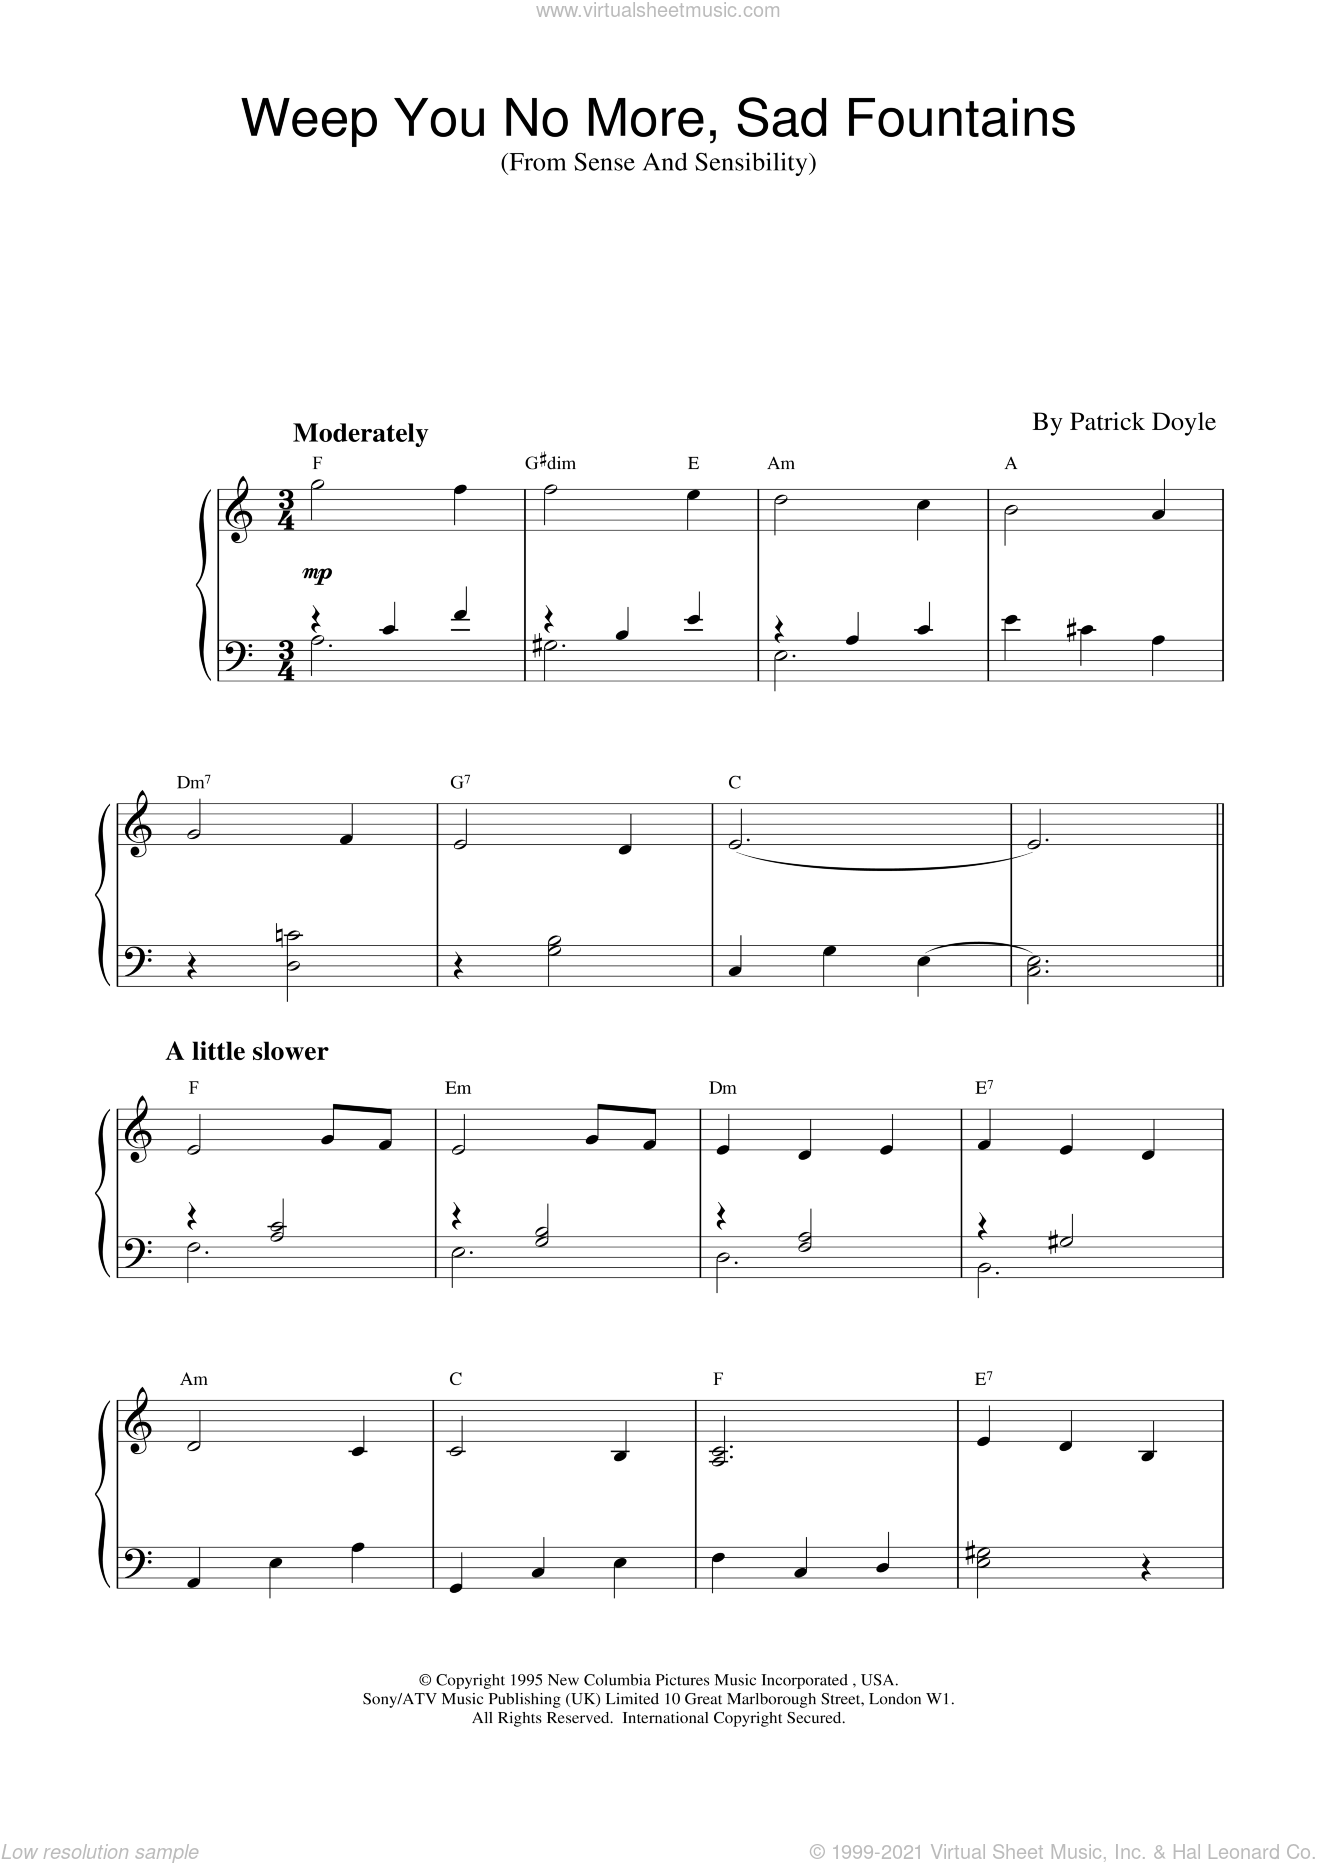 Weep You No More, Sad Fountains (from Sense And Sensibility) sheet music for piano solo by Patrick Doyle and Sense And Sensibility (Movie), intermediate skill level